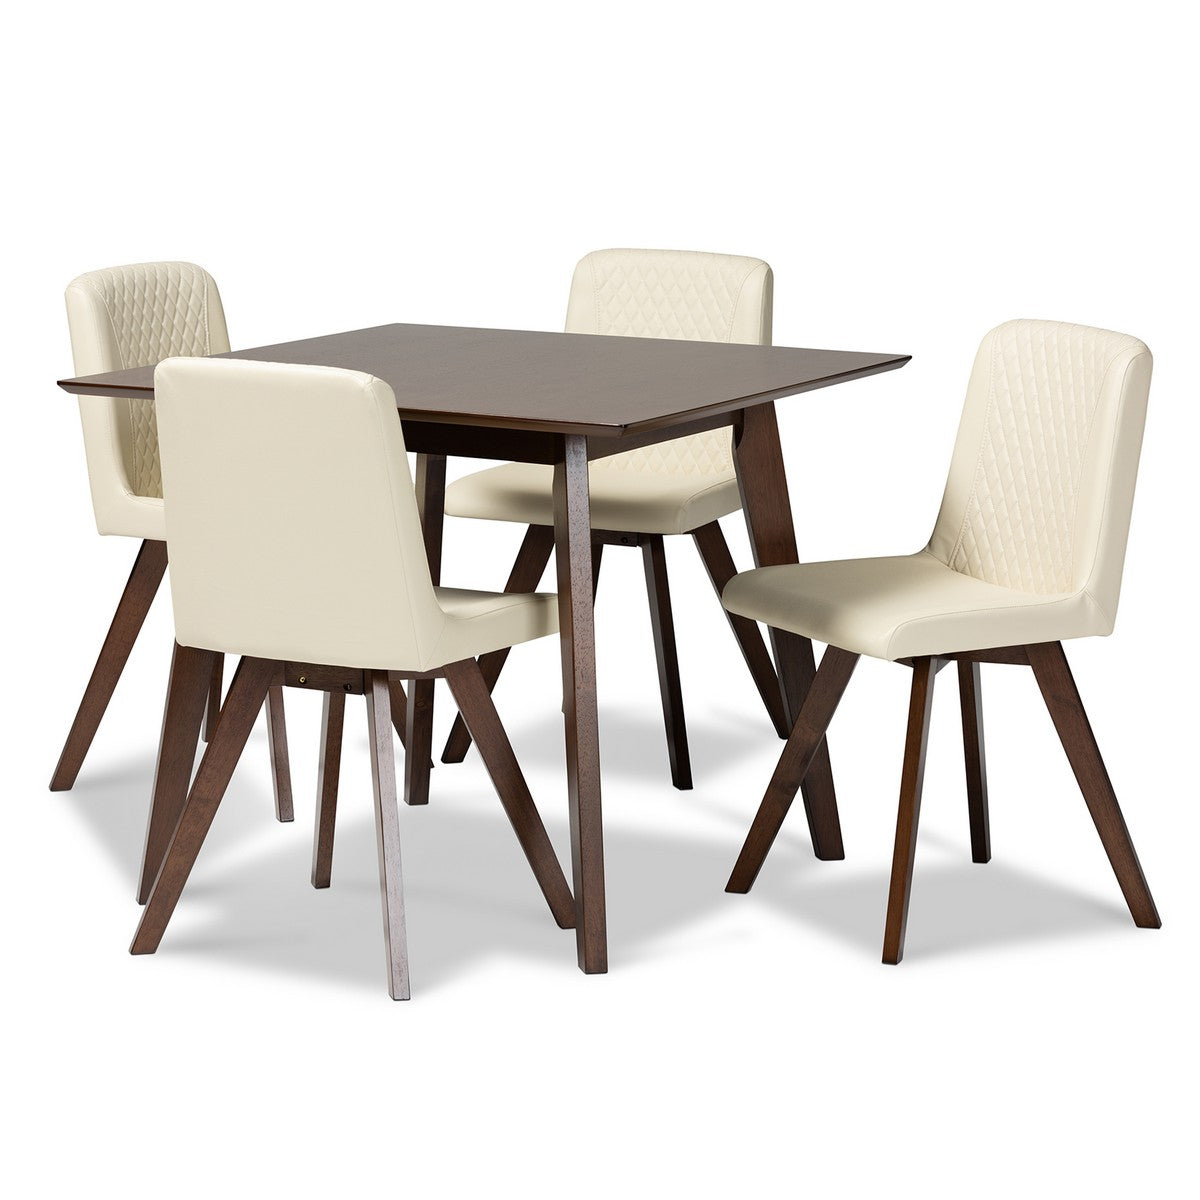 Baxton Studio Pernille Modern Transitional Cream Faux Leather Upholstered Walnut Finished Wood 5-Piece Dining Set Baxton Studio-Dining Sets-Minimal And Modern - 1